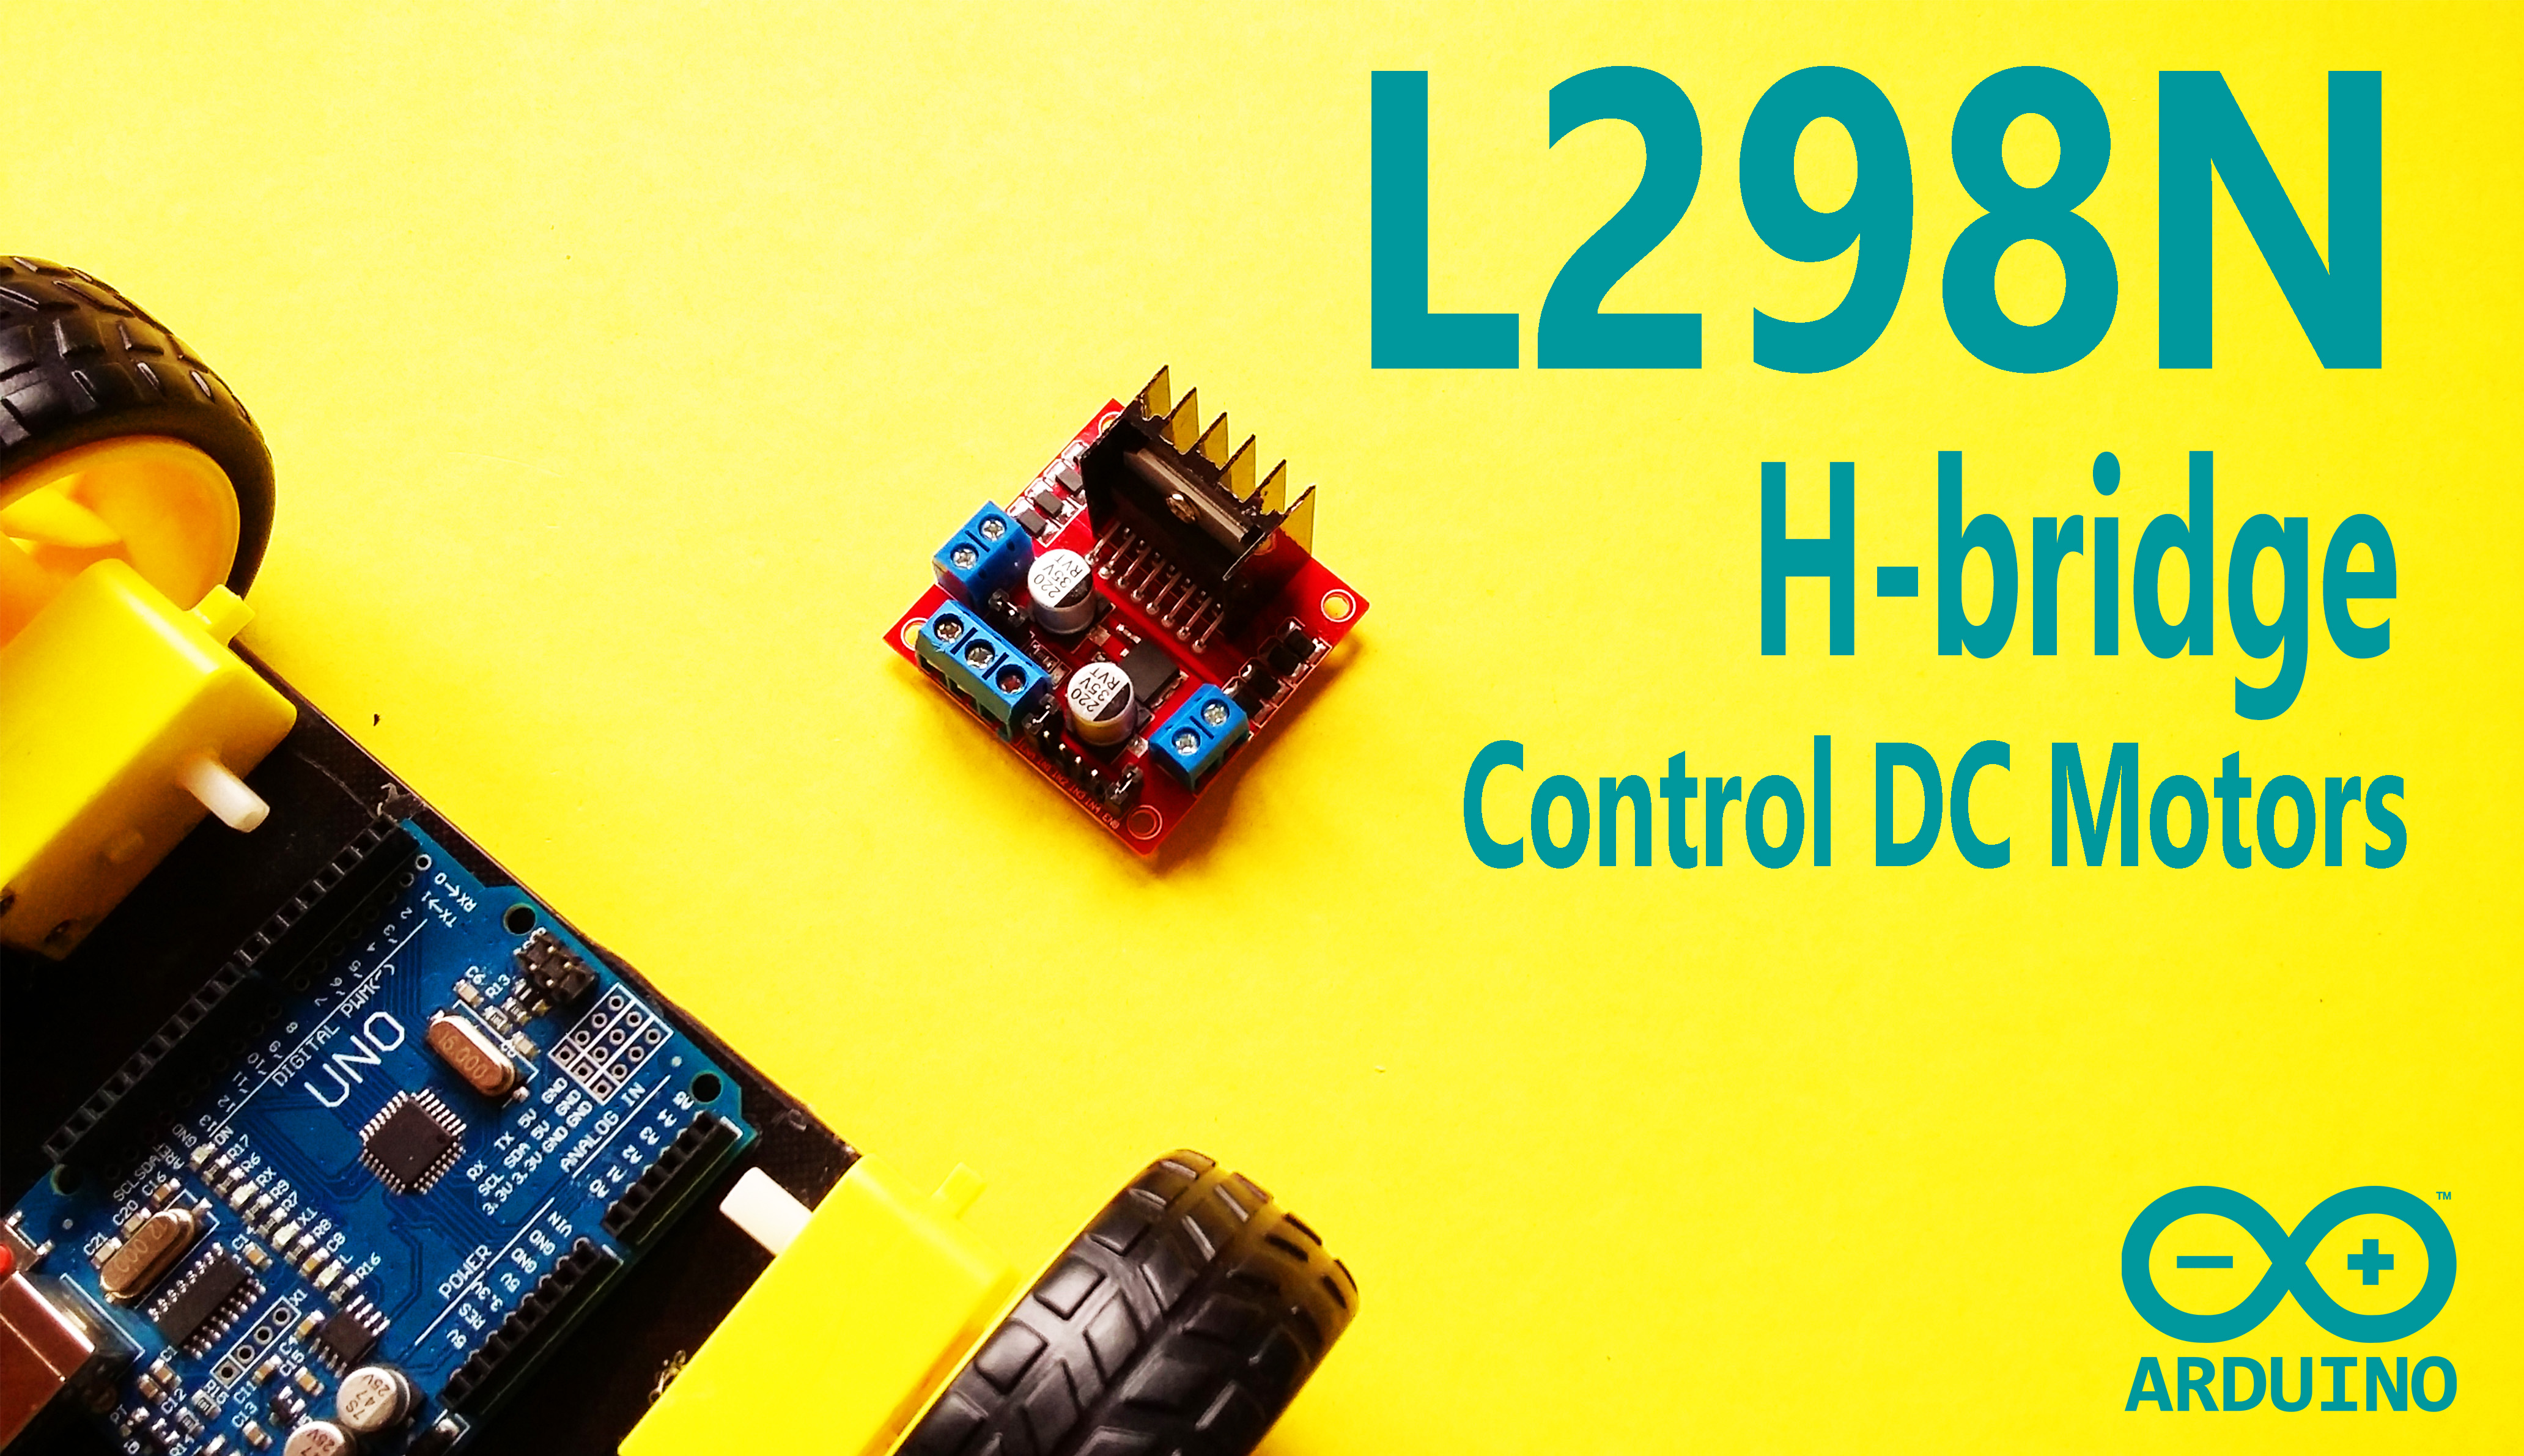 Picture of Arduino - DC Motor Control and PWM Signal With L298N H-bridge